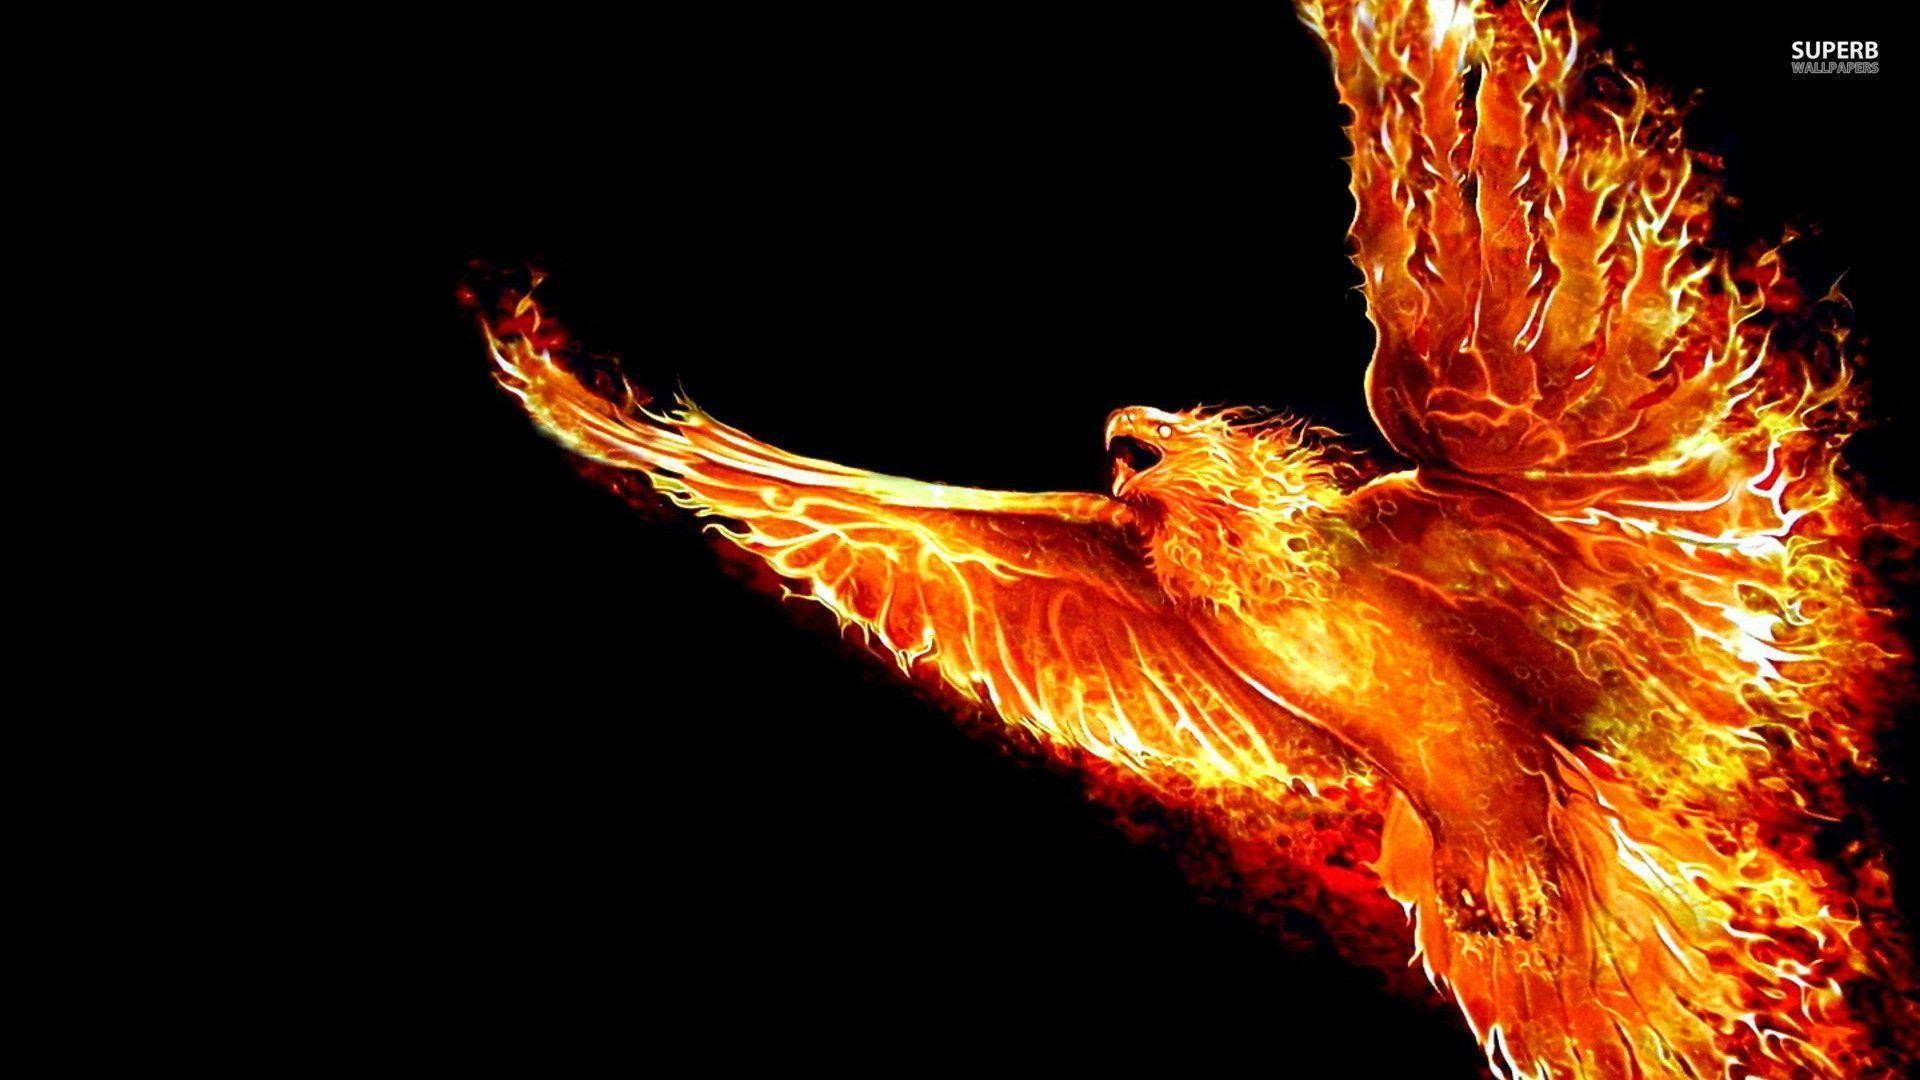 1920x1080 Phoenix wallpaper - Artistic wallpapers - #